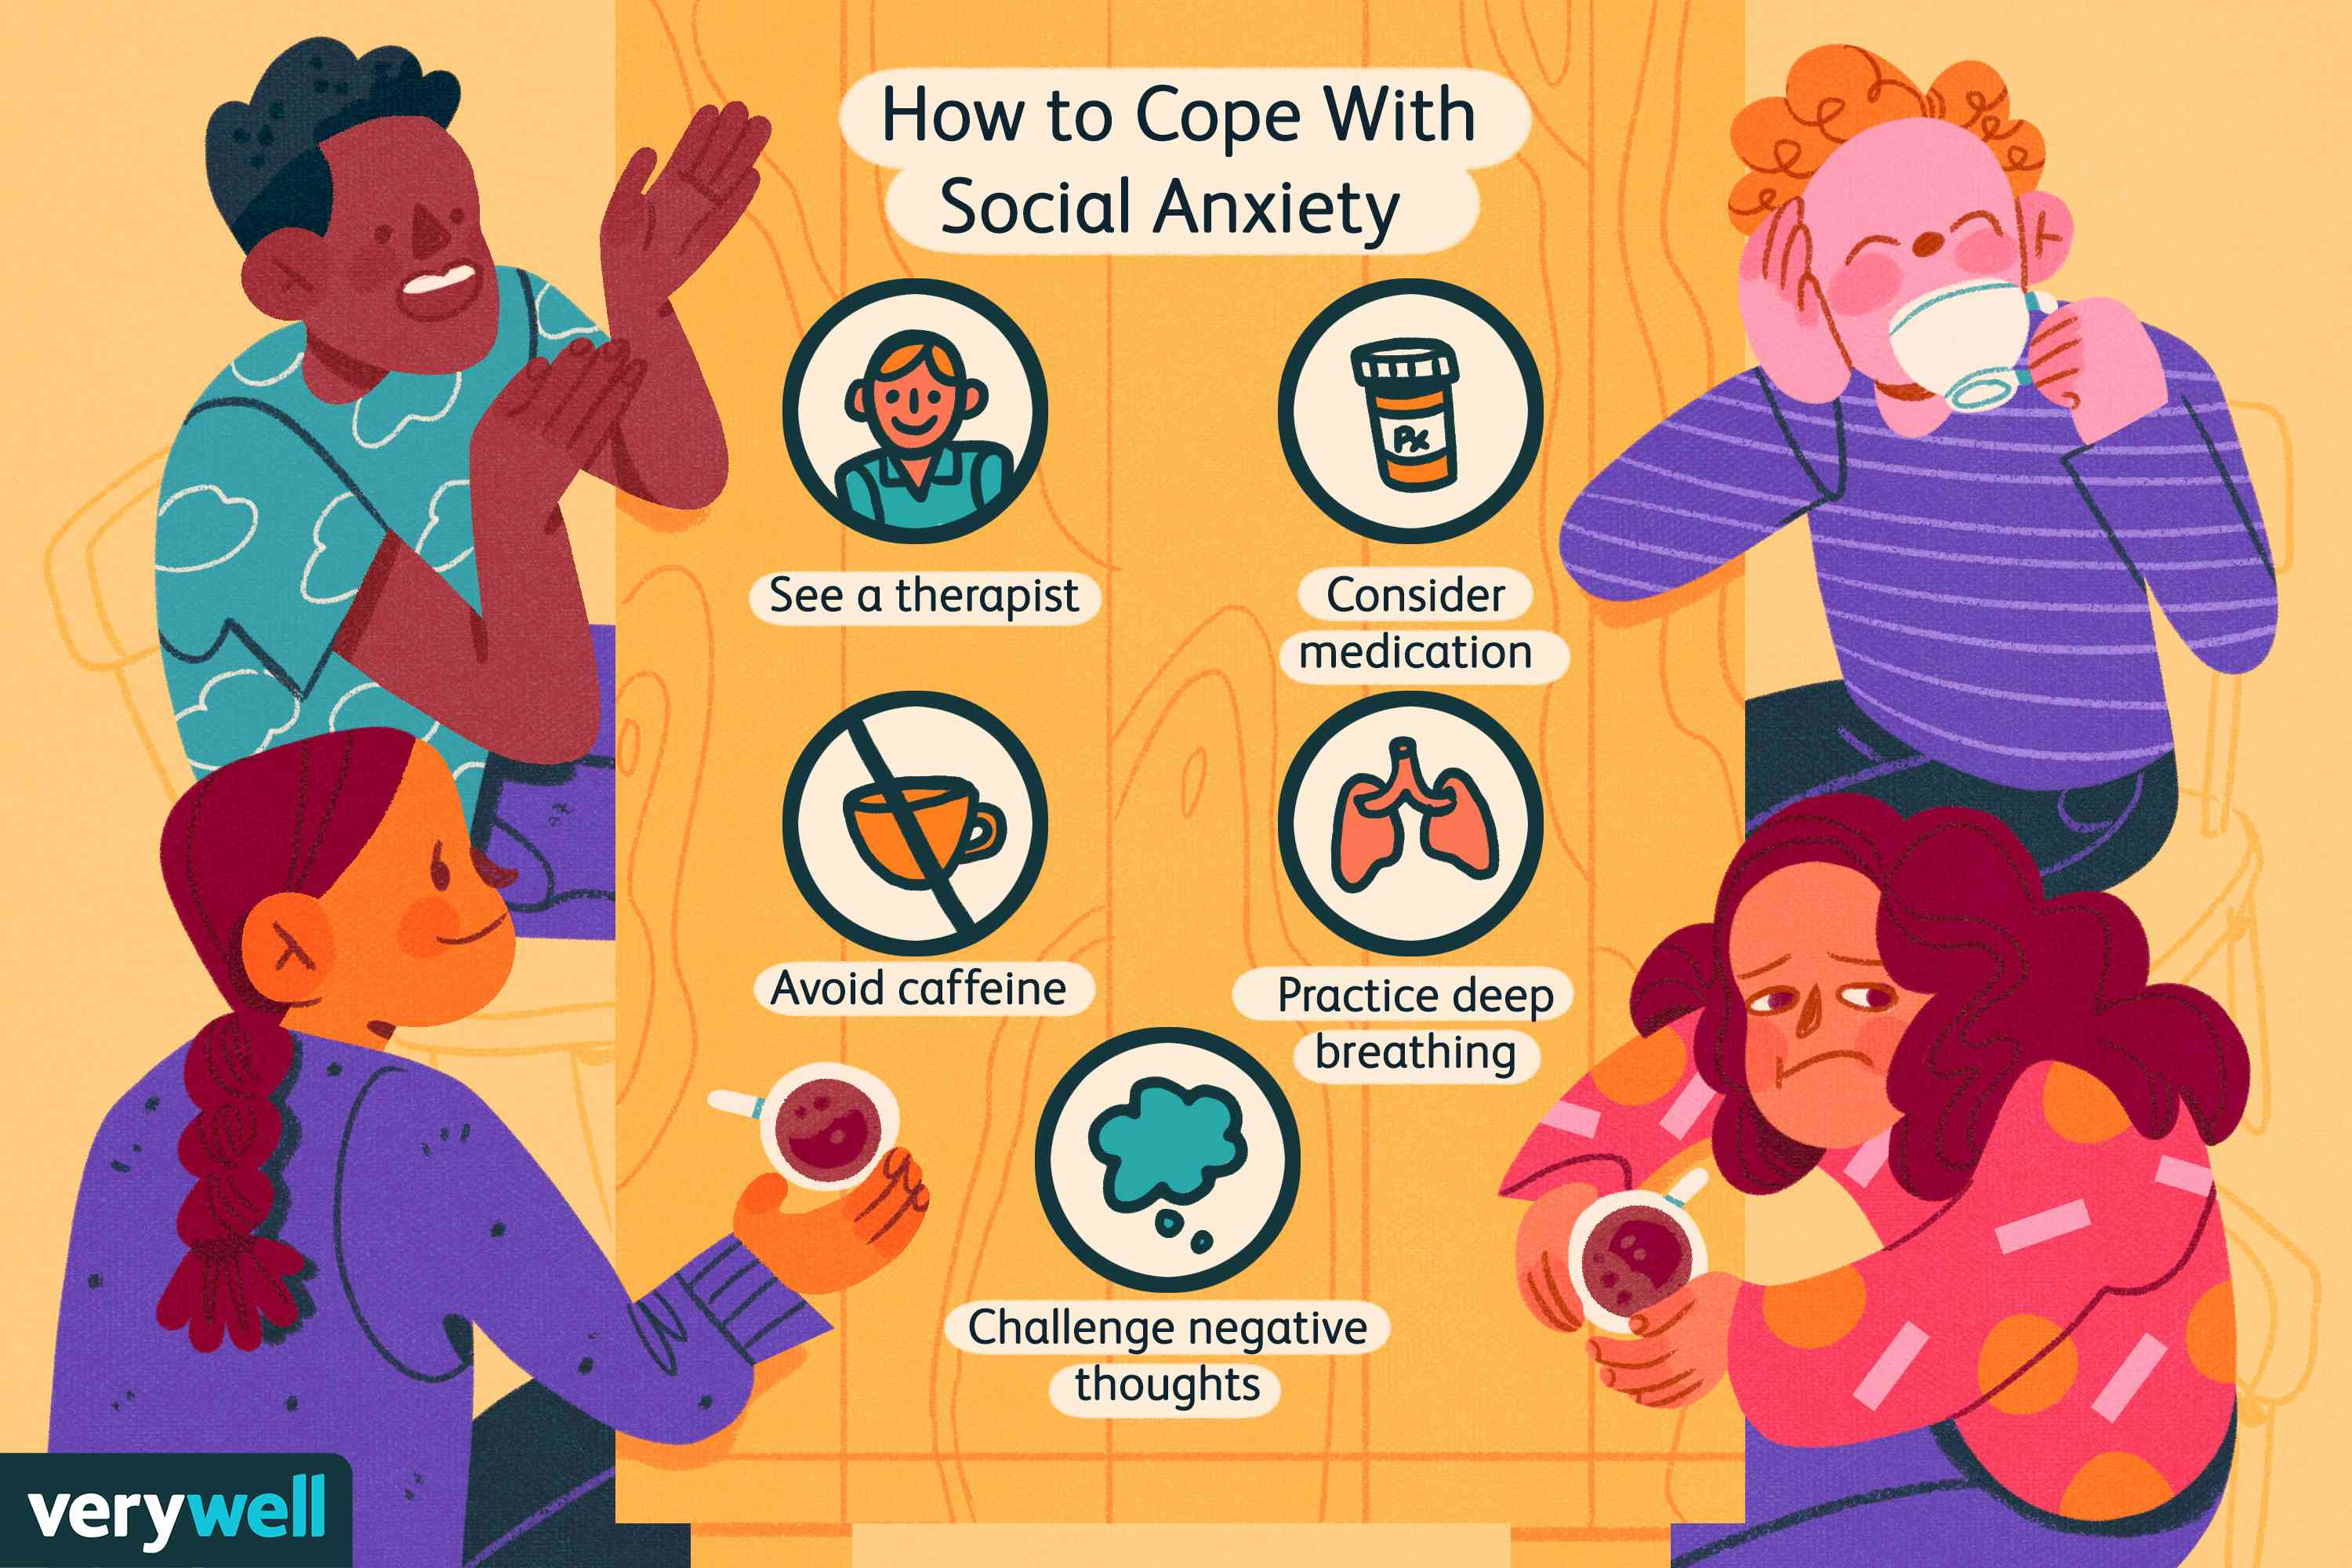 How to Cope With Social Anxiety